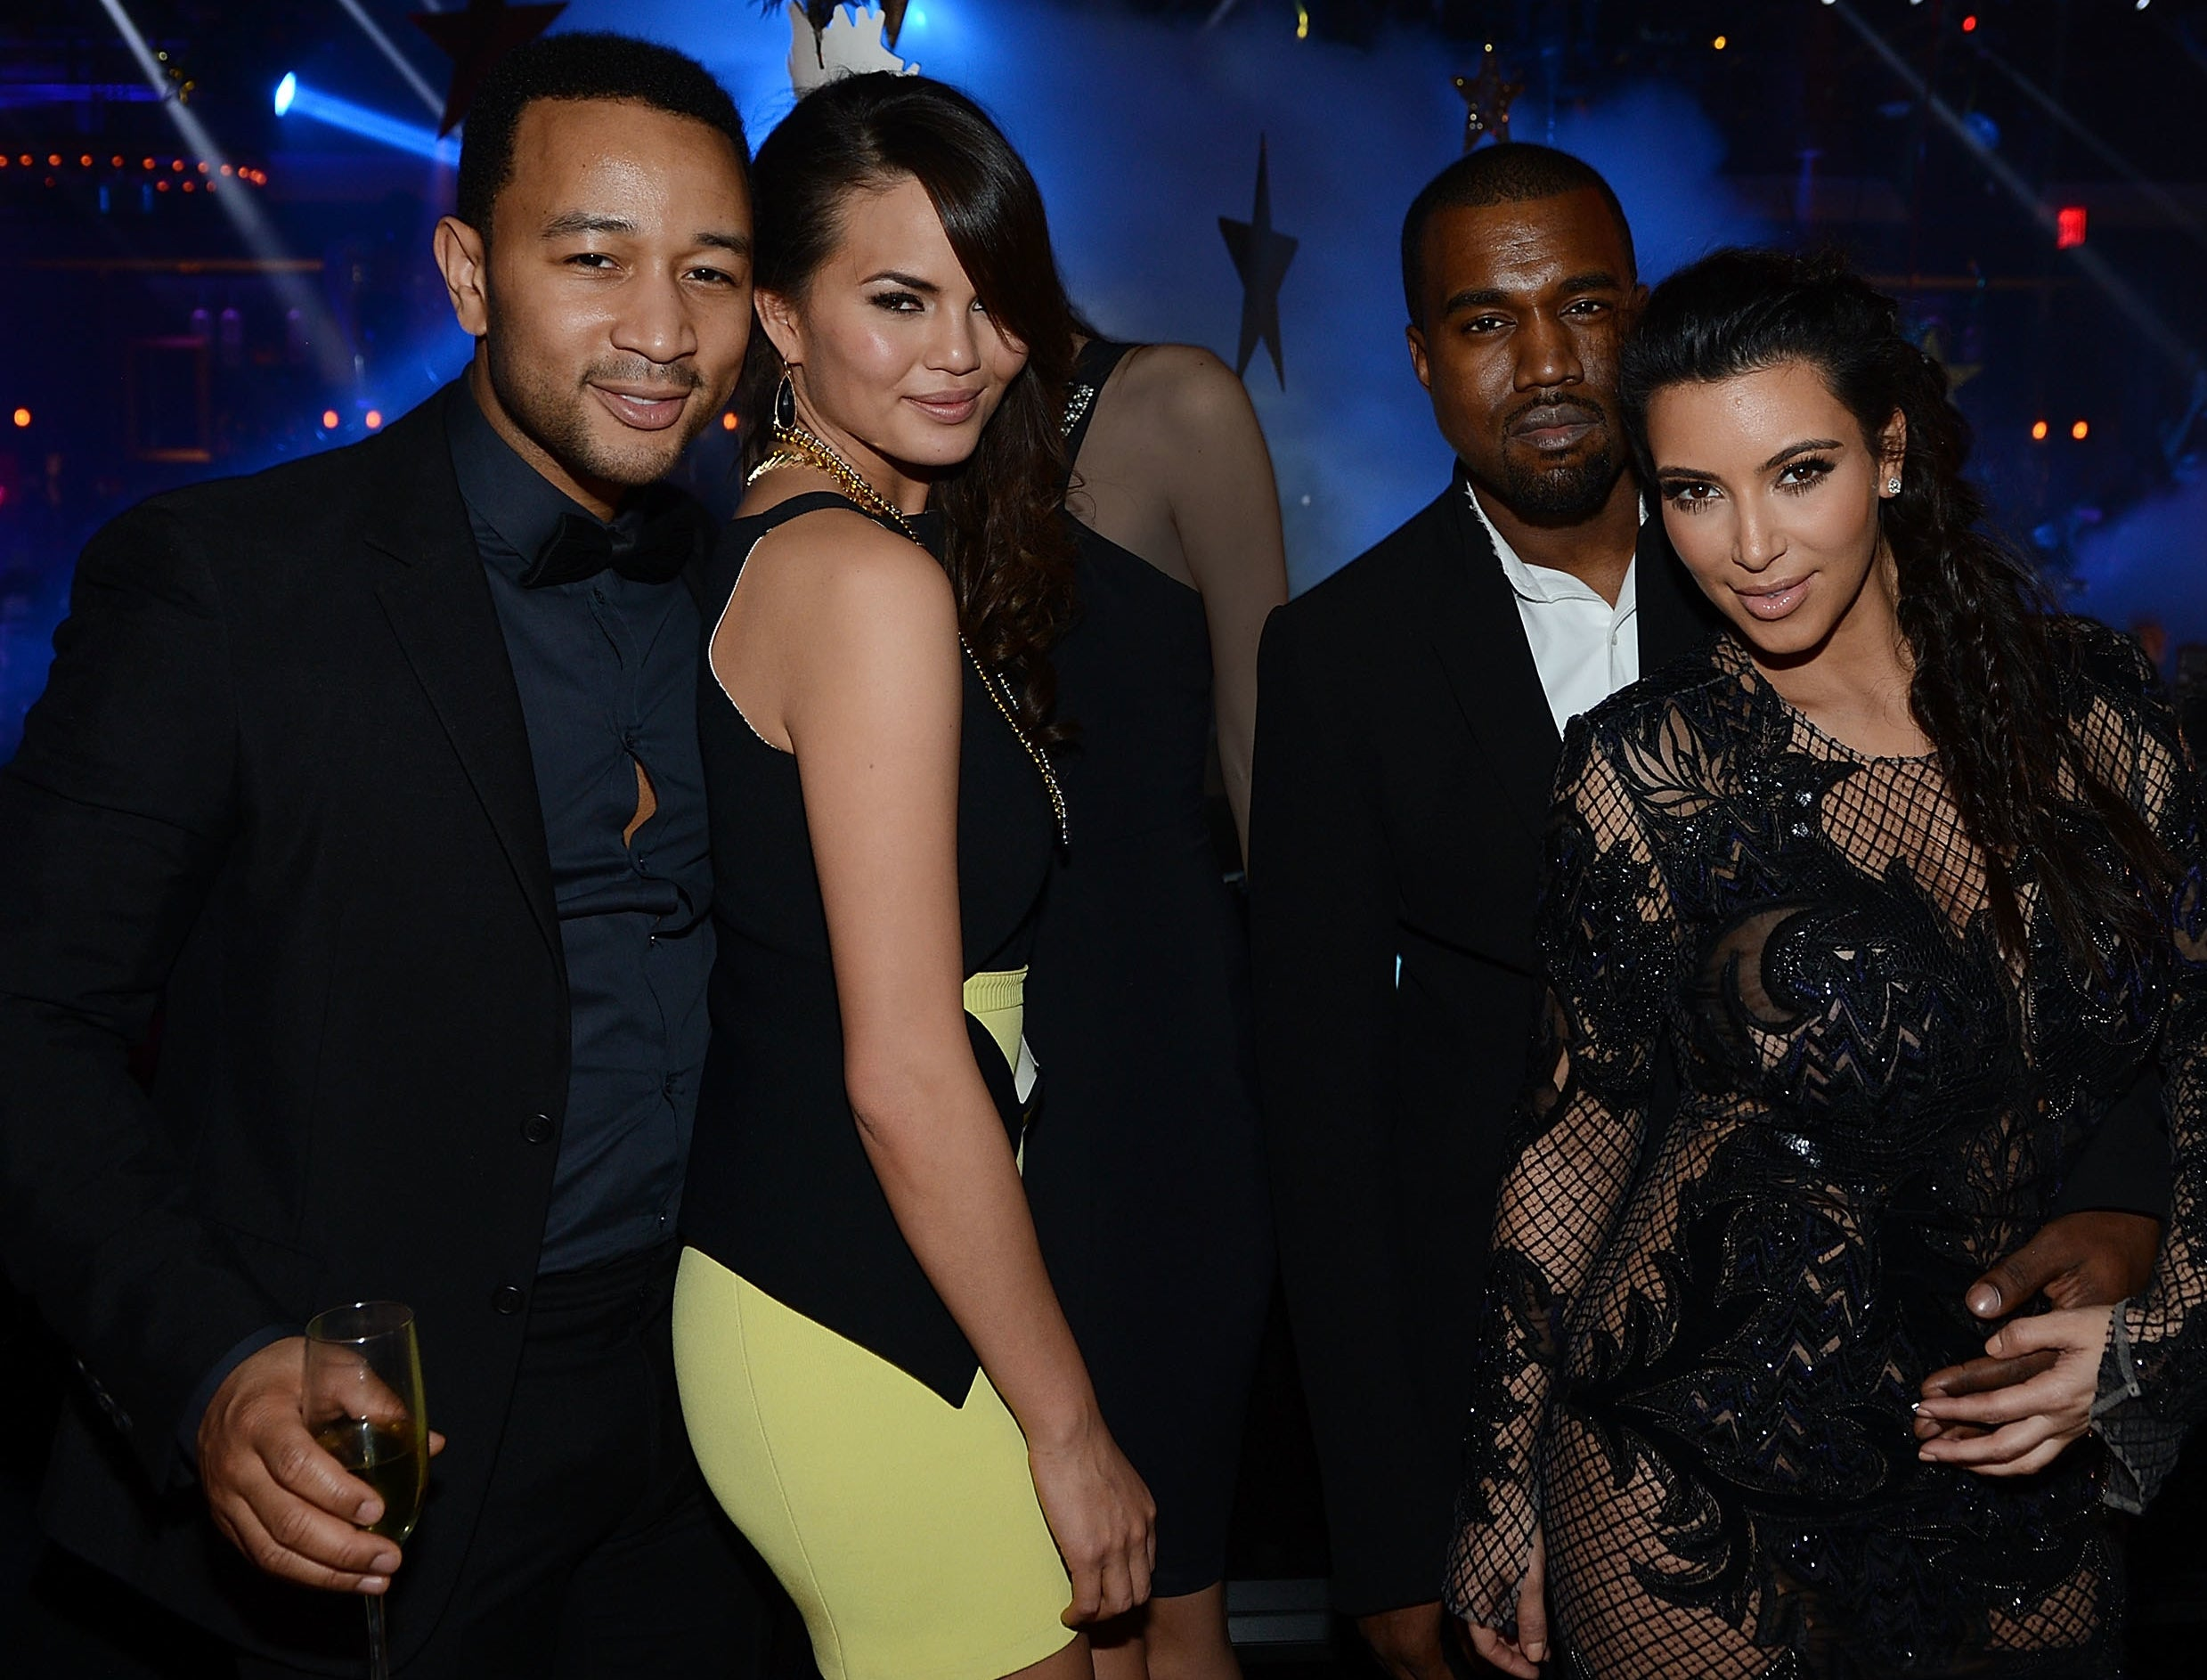 The two couples pose together at an event